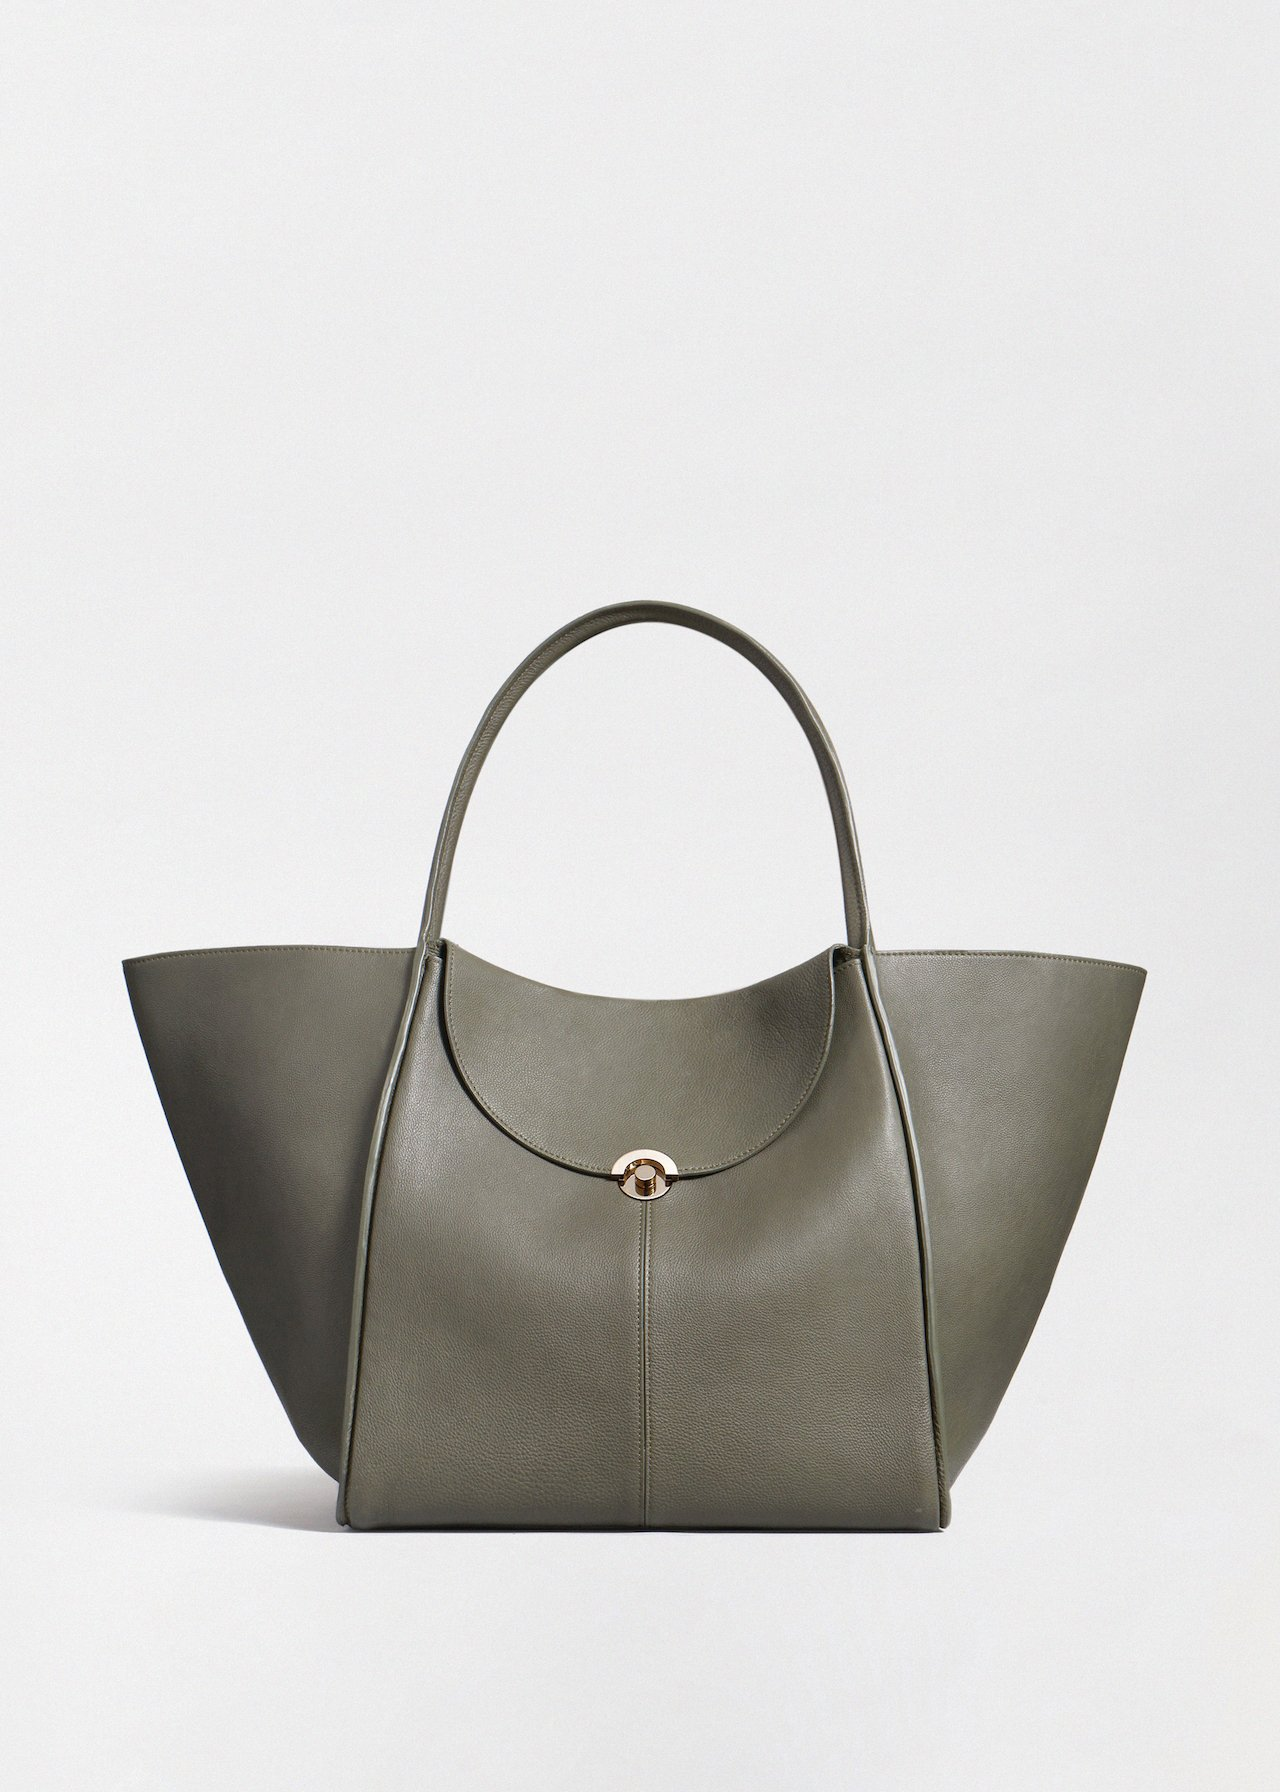 Cabas Bag in Pebbled Leather - Ivory in Olive by Co Collections